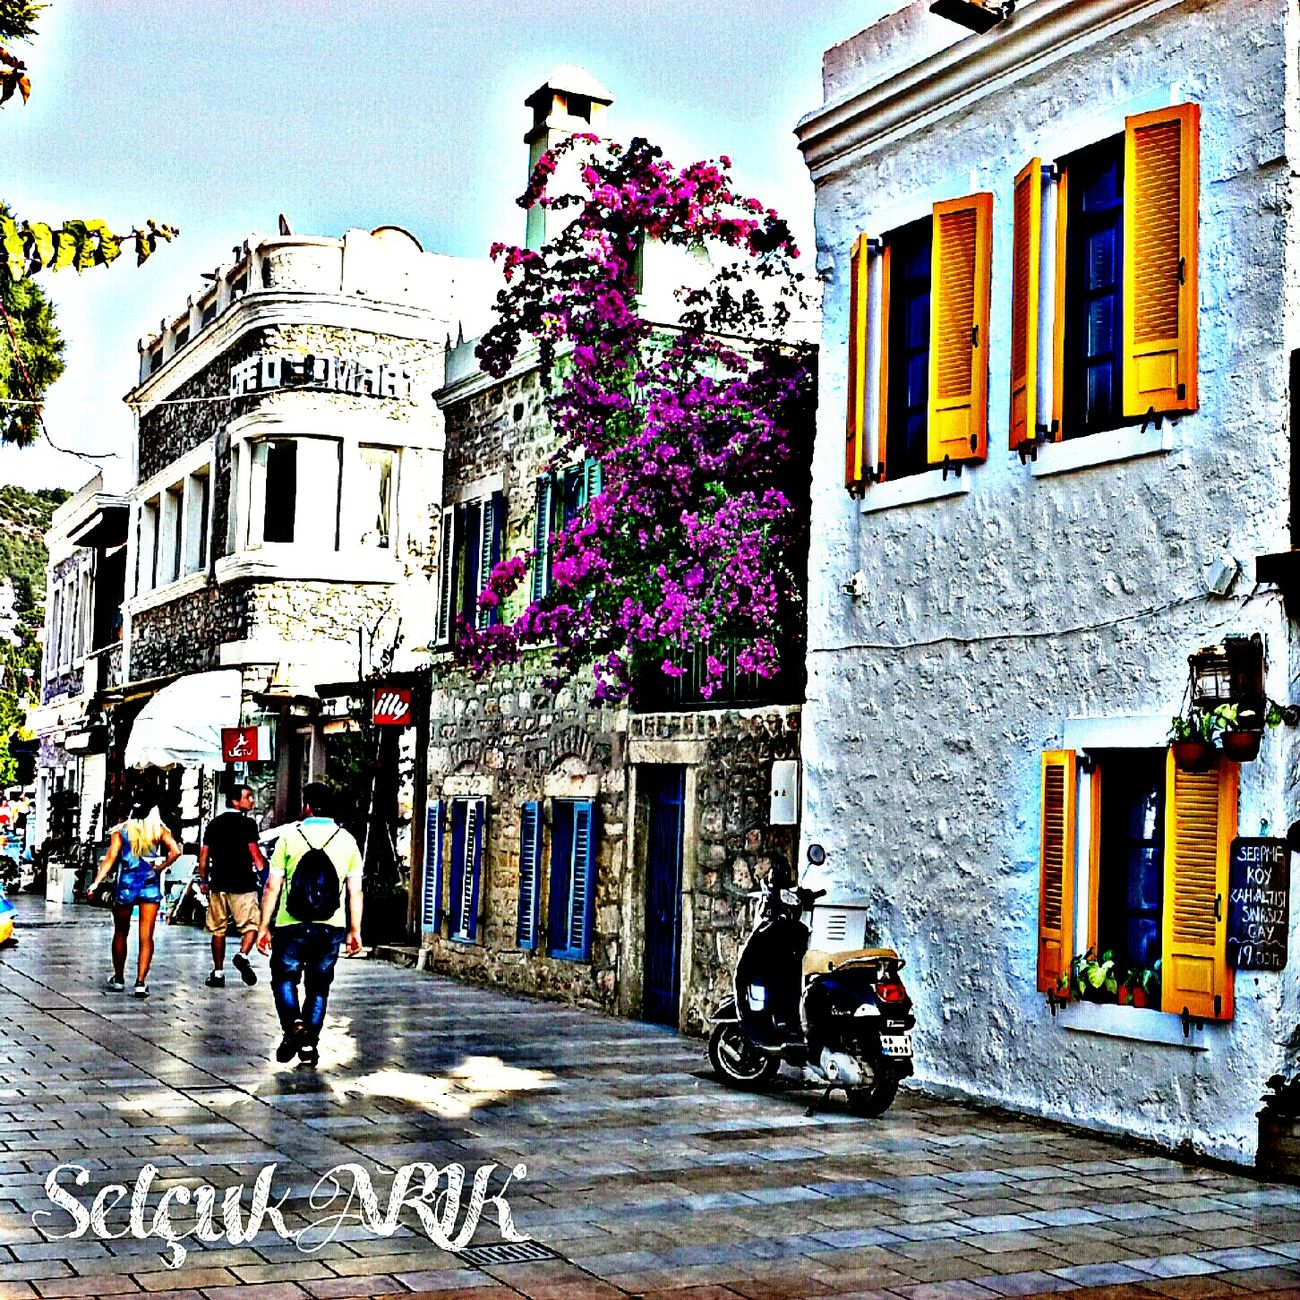 Building Exterior Architecture Built Structure City Outdoors Day Women Real People People Sky Adult Adults Only Carnival Crowds And Details HDR City Architecture Likeforlike Hdrphotography Hdr_arts  Hdr_pics Hdr_lovers Hdr_Collection Hdr_arts  Hdr_captures Minimalist Architecture